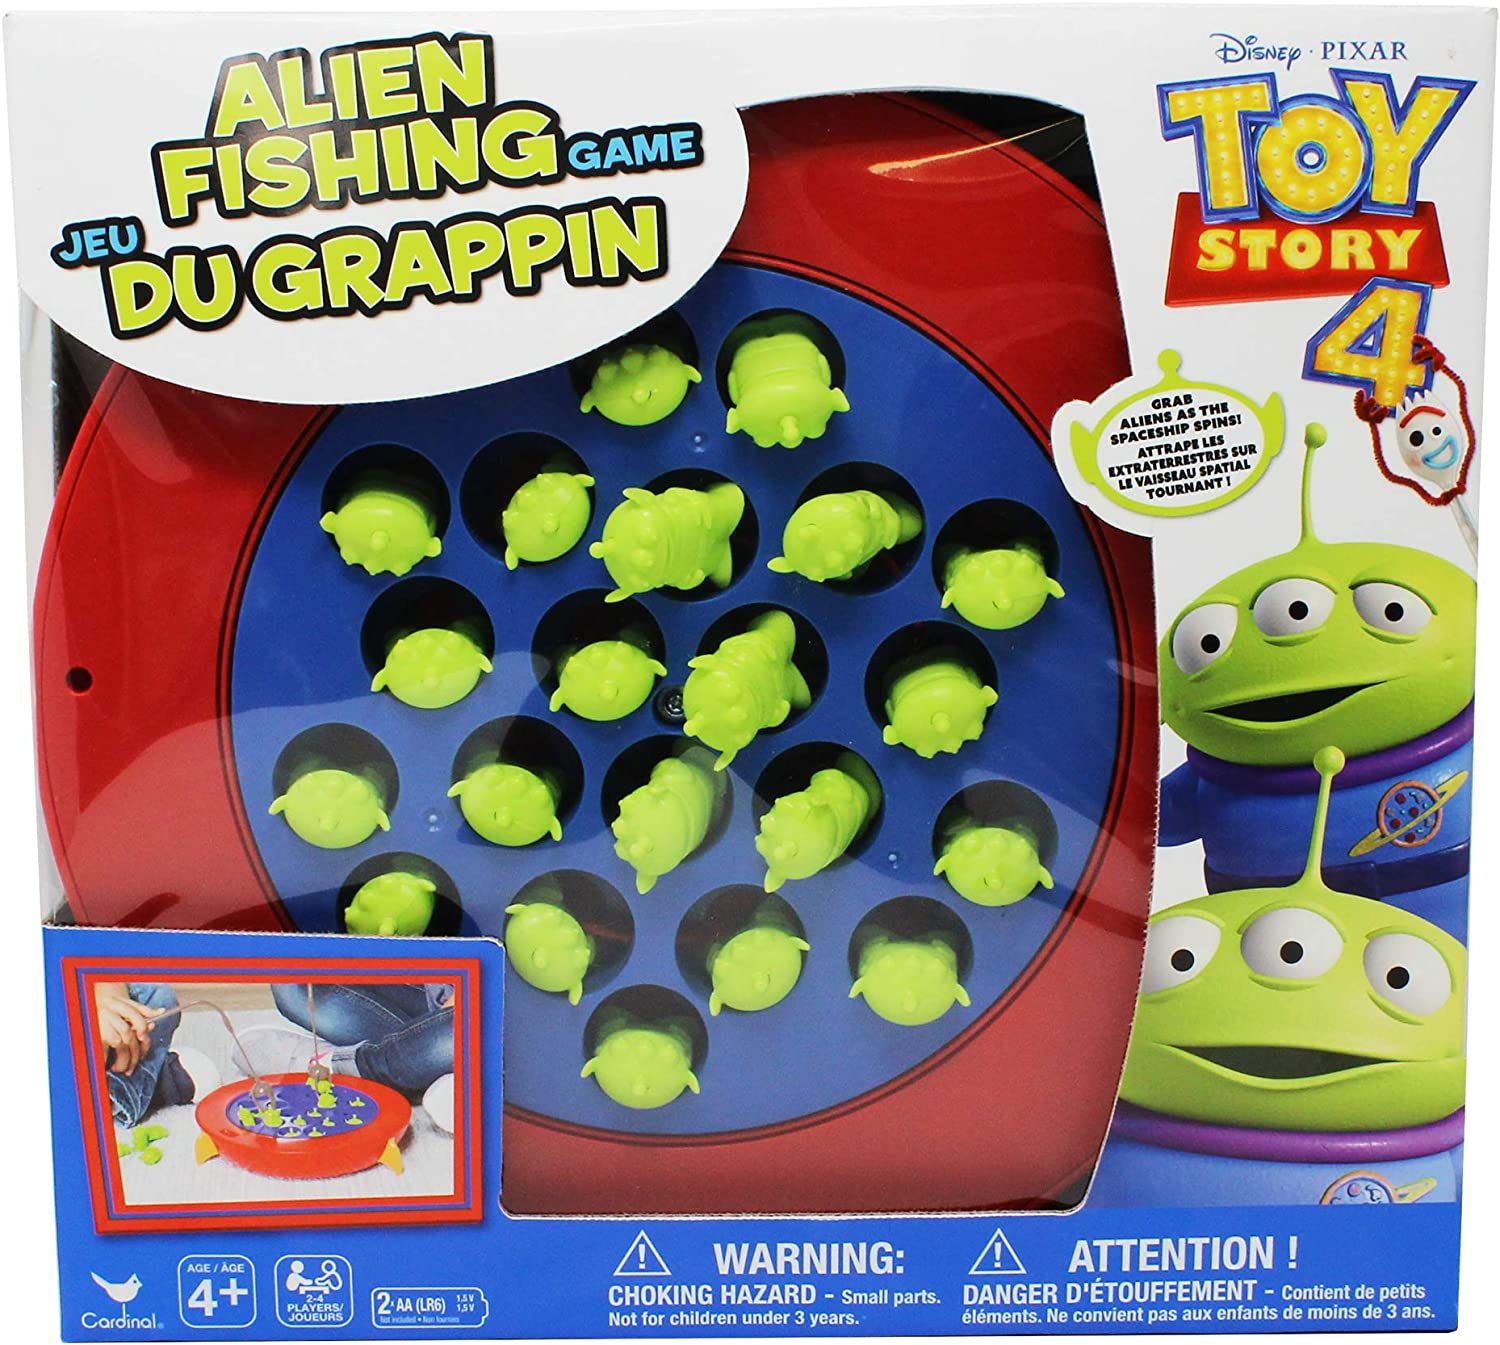 Disney Pixar Toy Story 4 Alien Fishing Game 60% OFF £6 @ Amazon